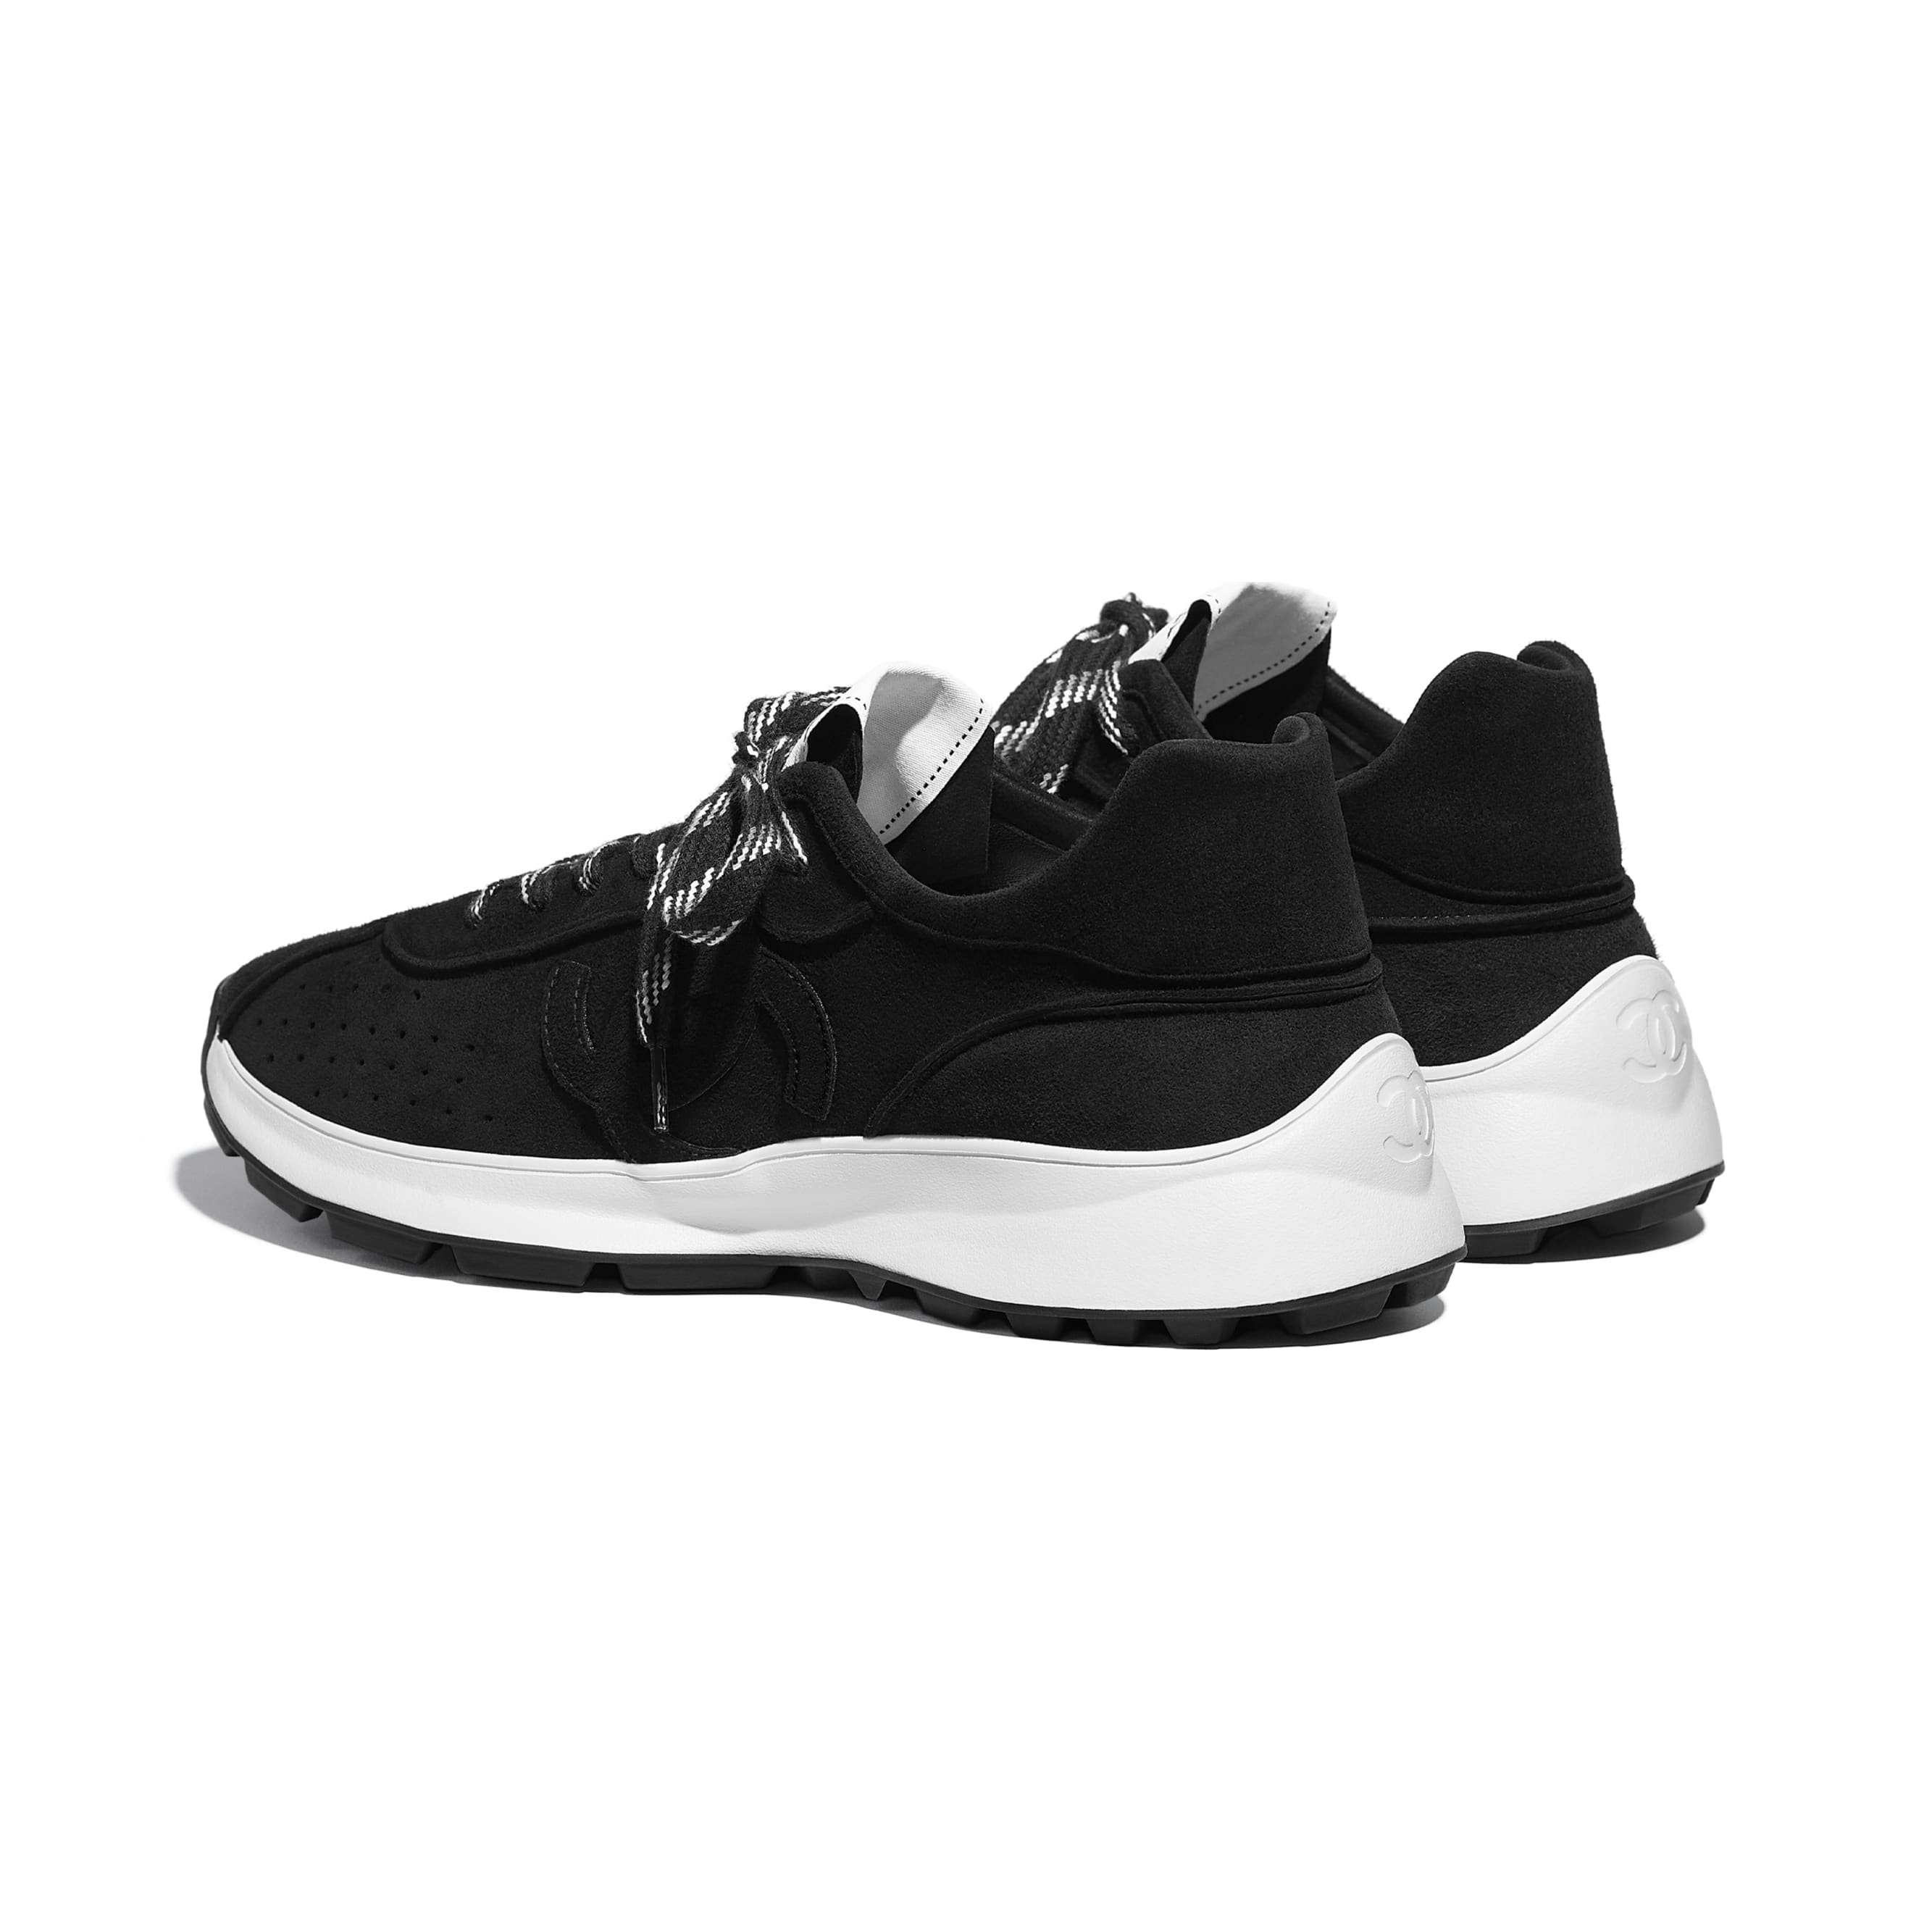 Trainers - Black - Suede Goatskin - CHANEL - Other view - see standard sized version